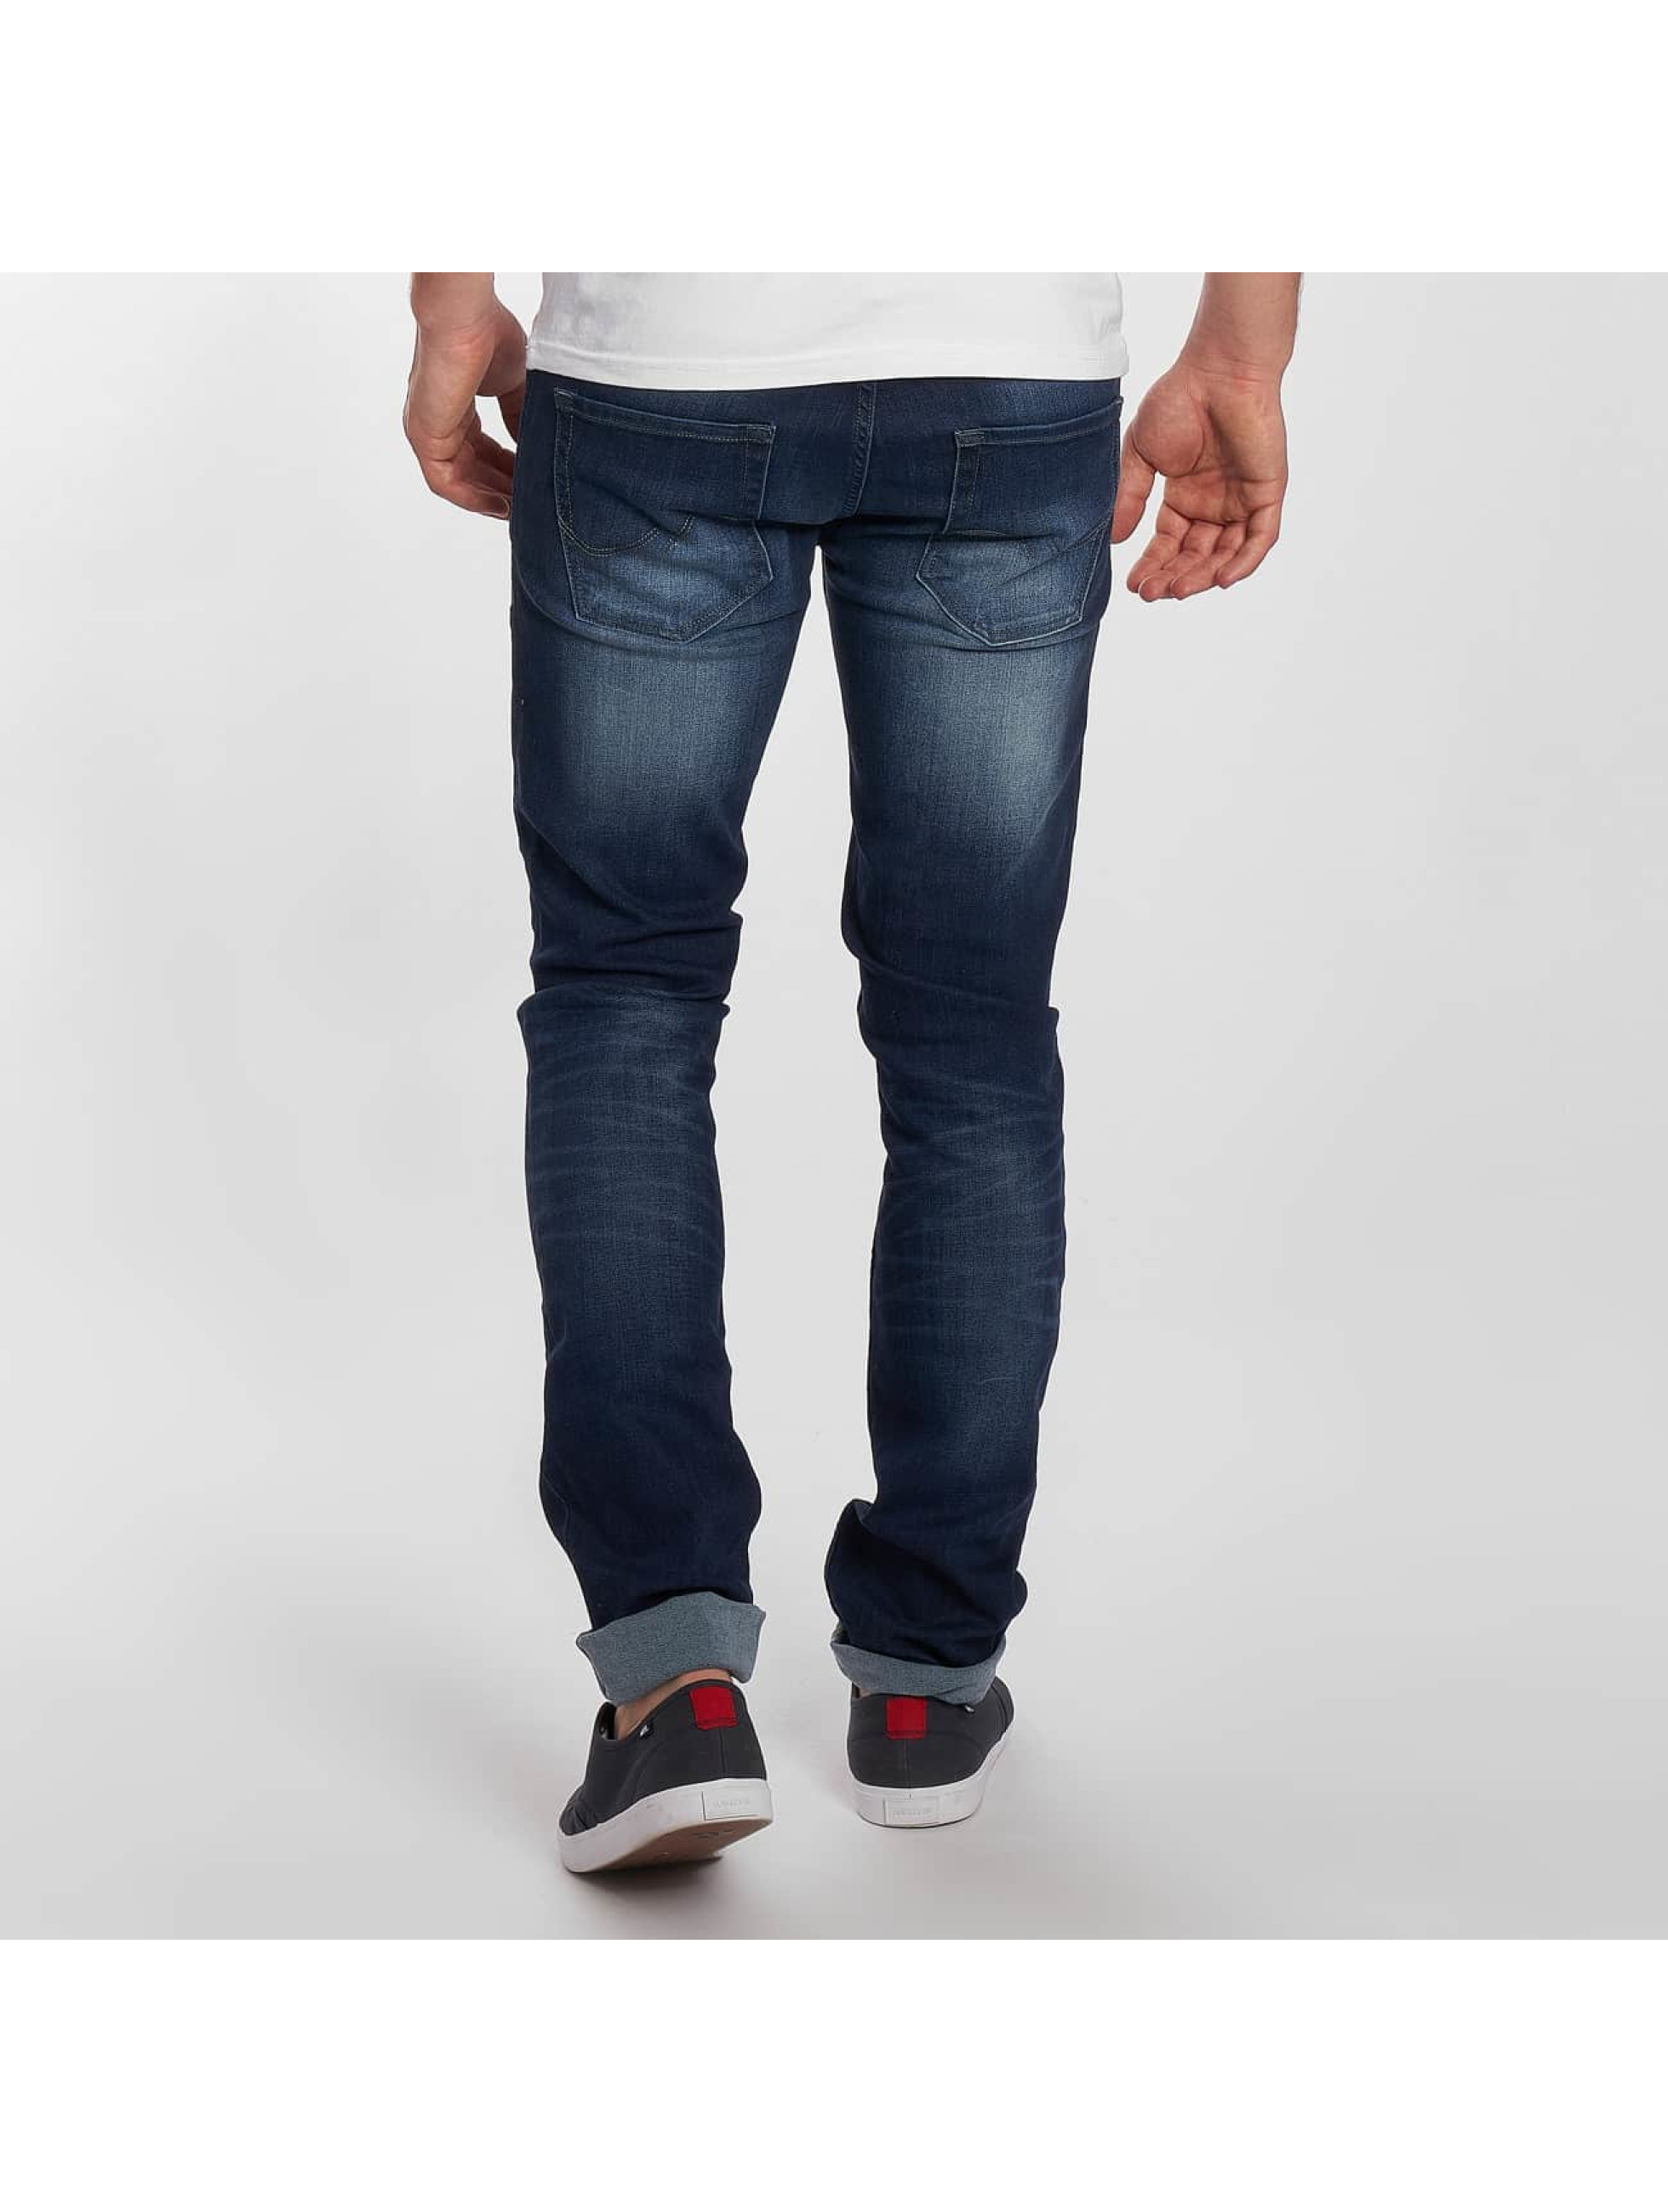 Jack & Jones Slim Fit Jeans jjiTim jjOriginal синий